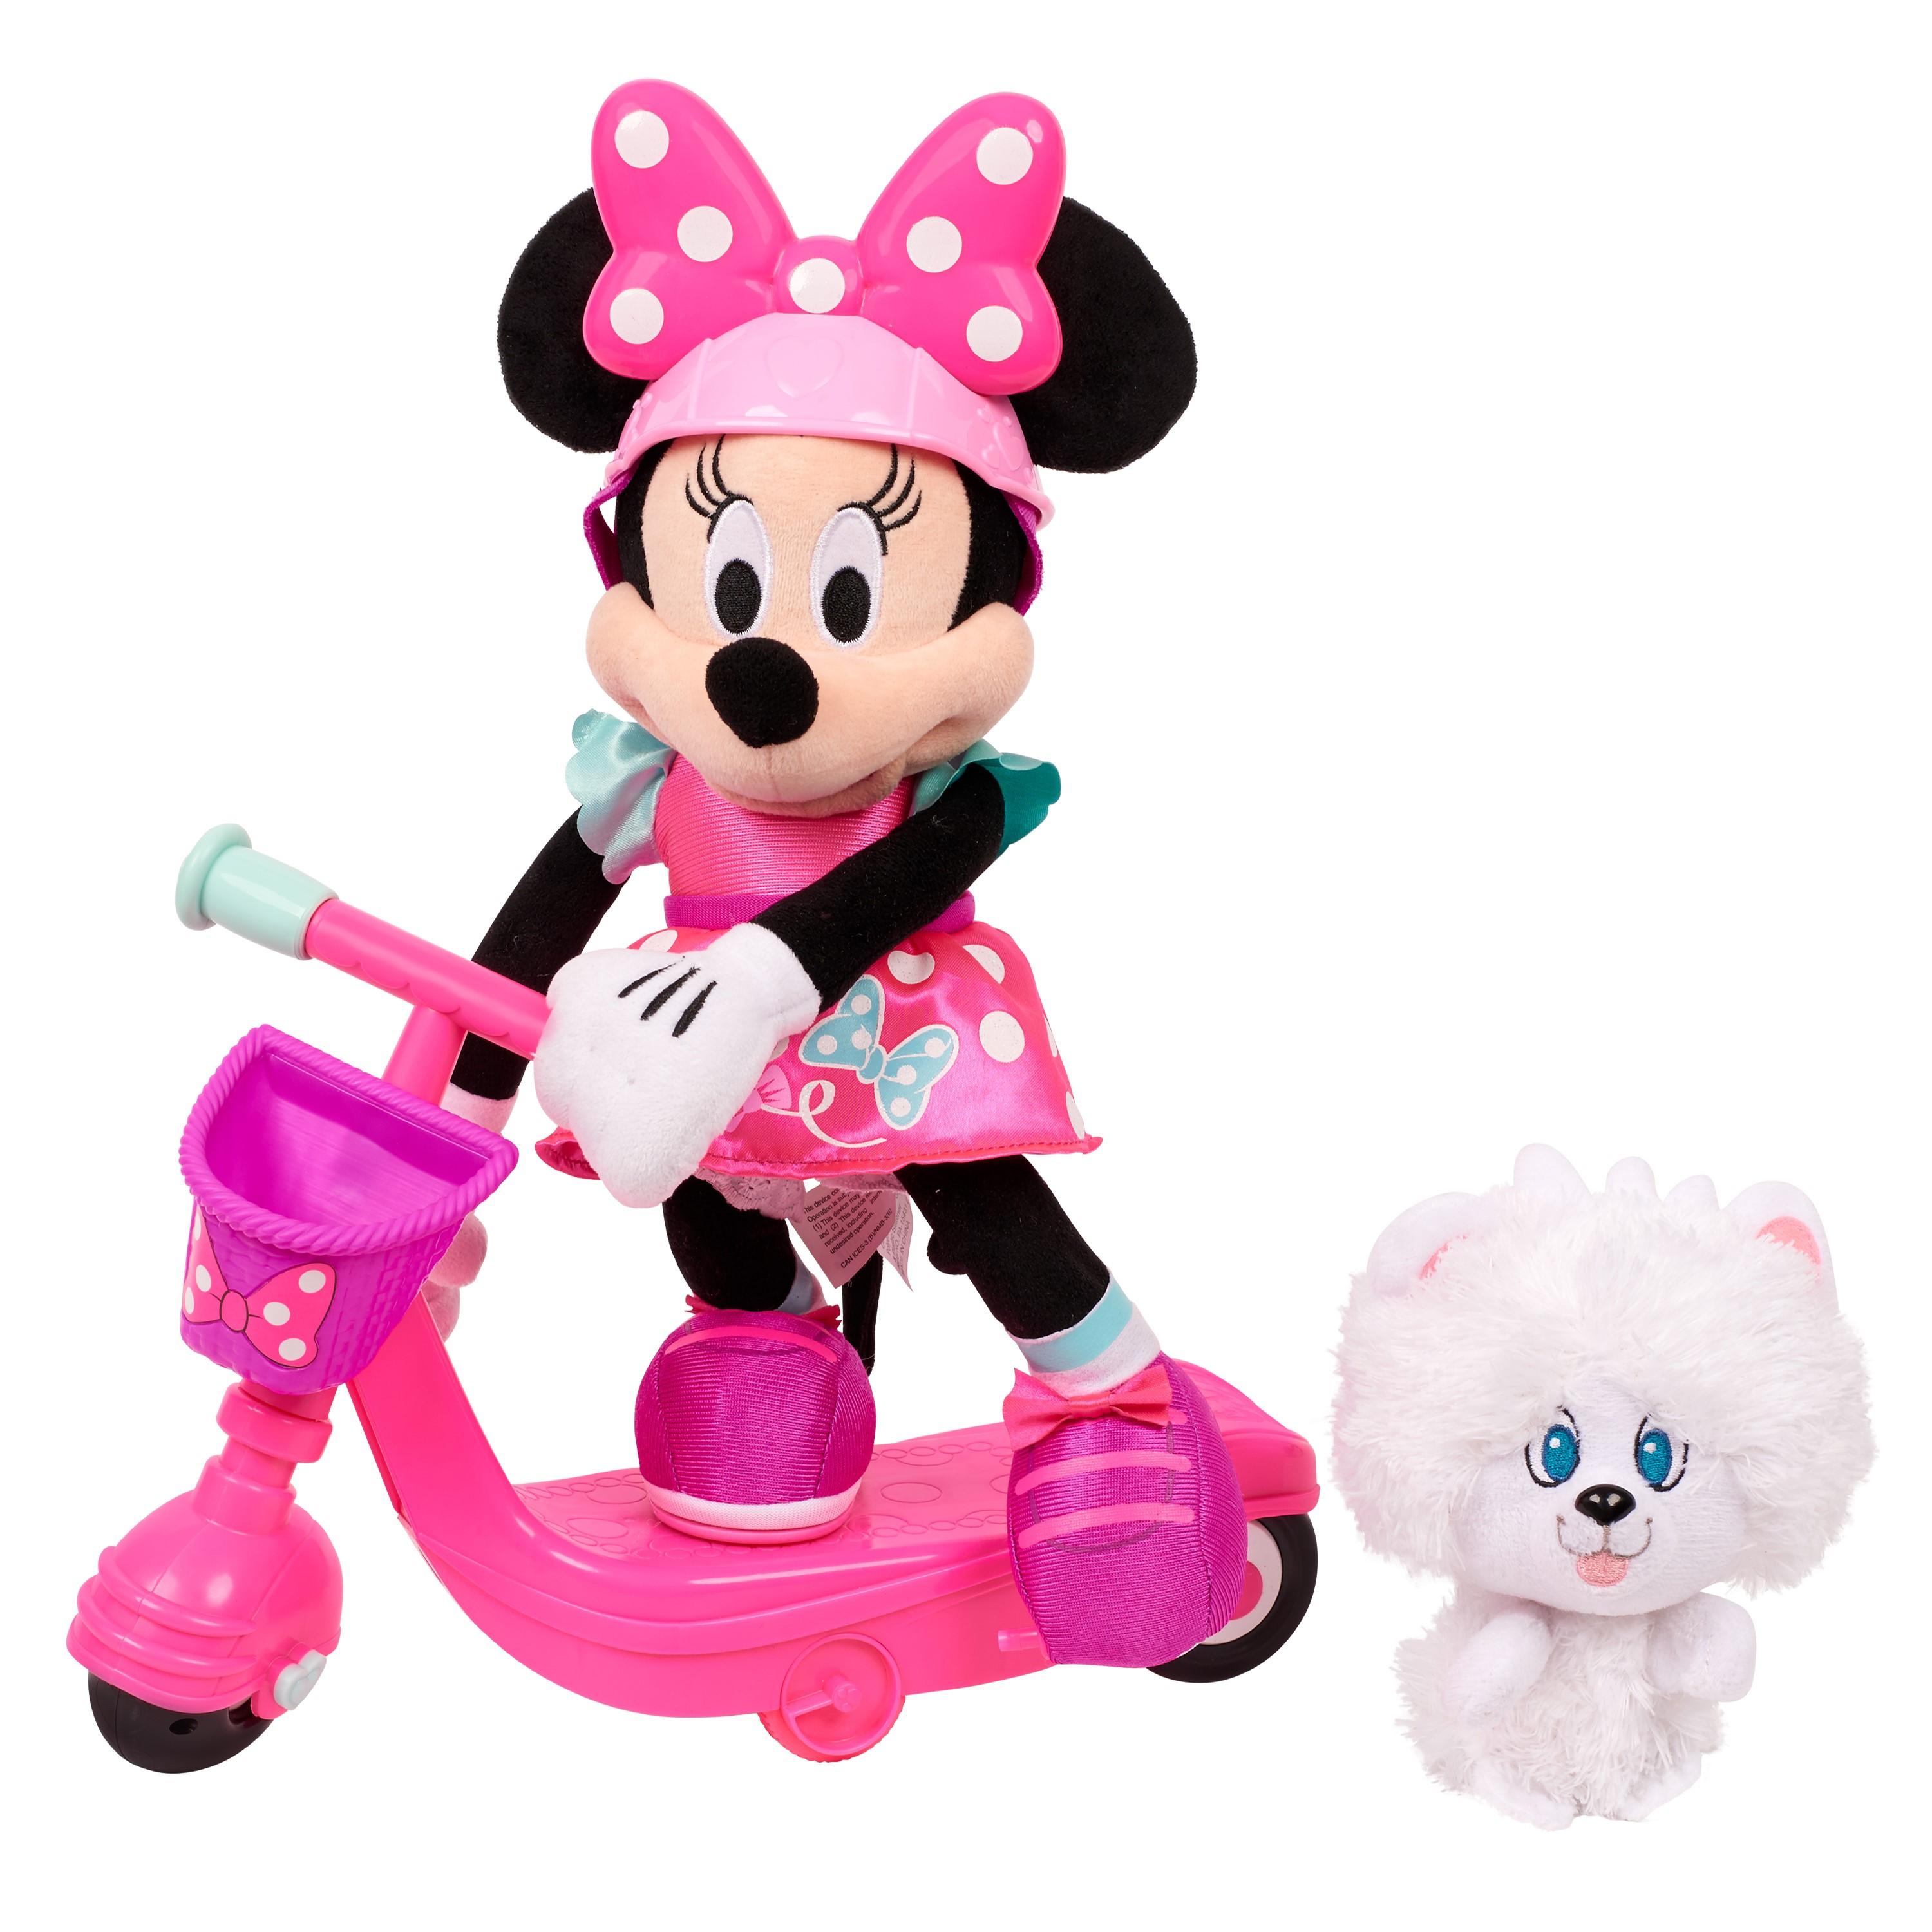 Minnie's Happy Helpers Sing & Spin Scooter Minnie Plush